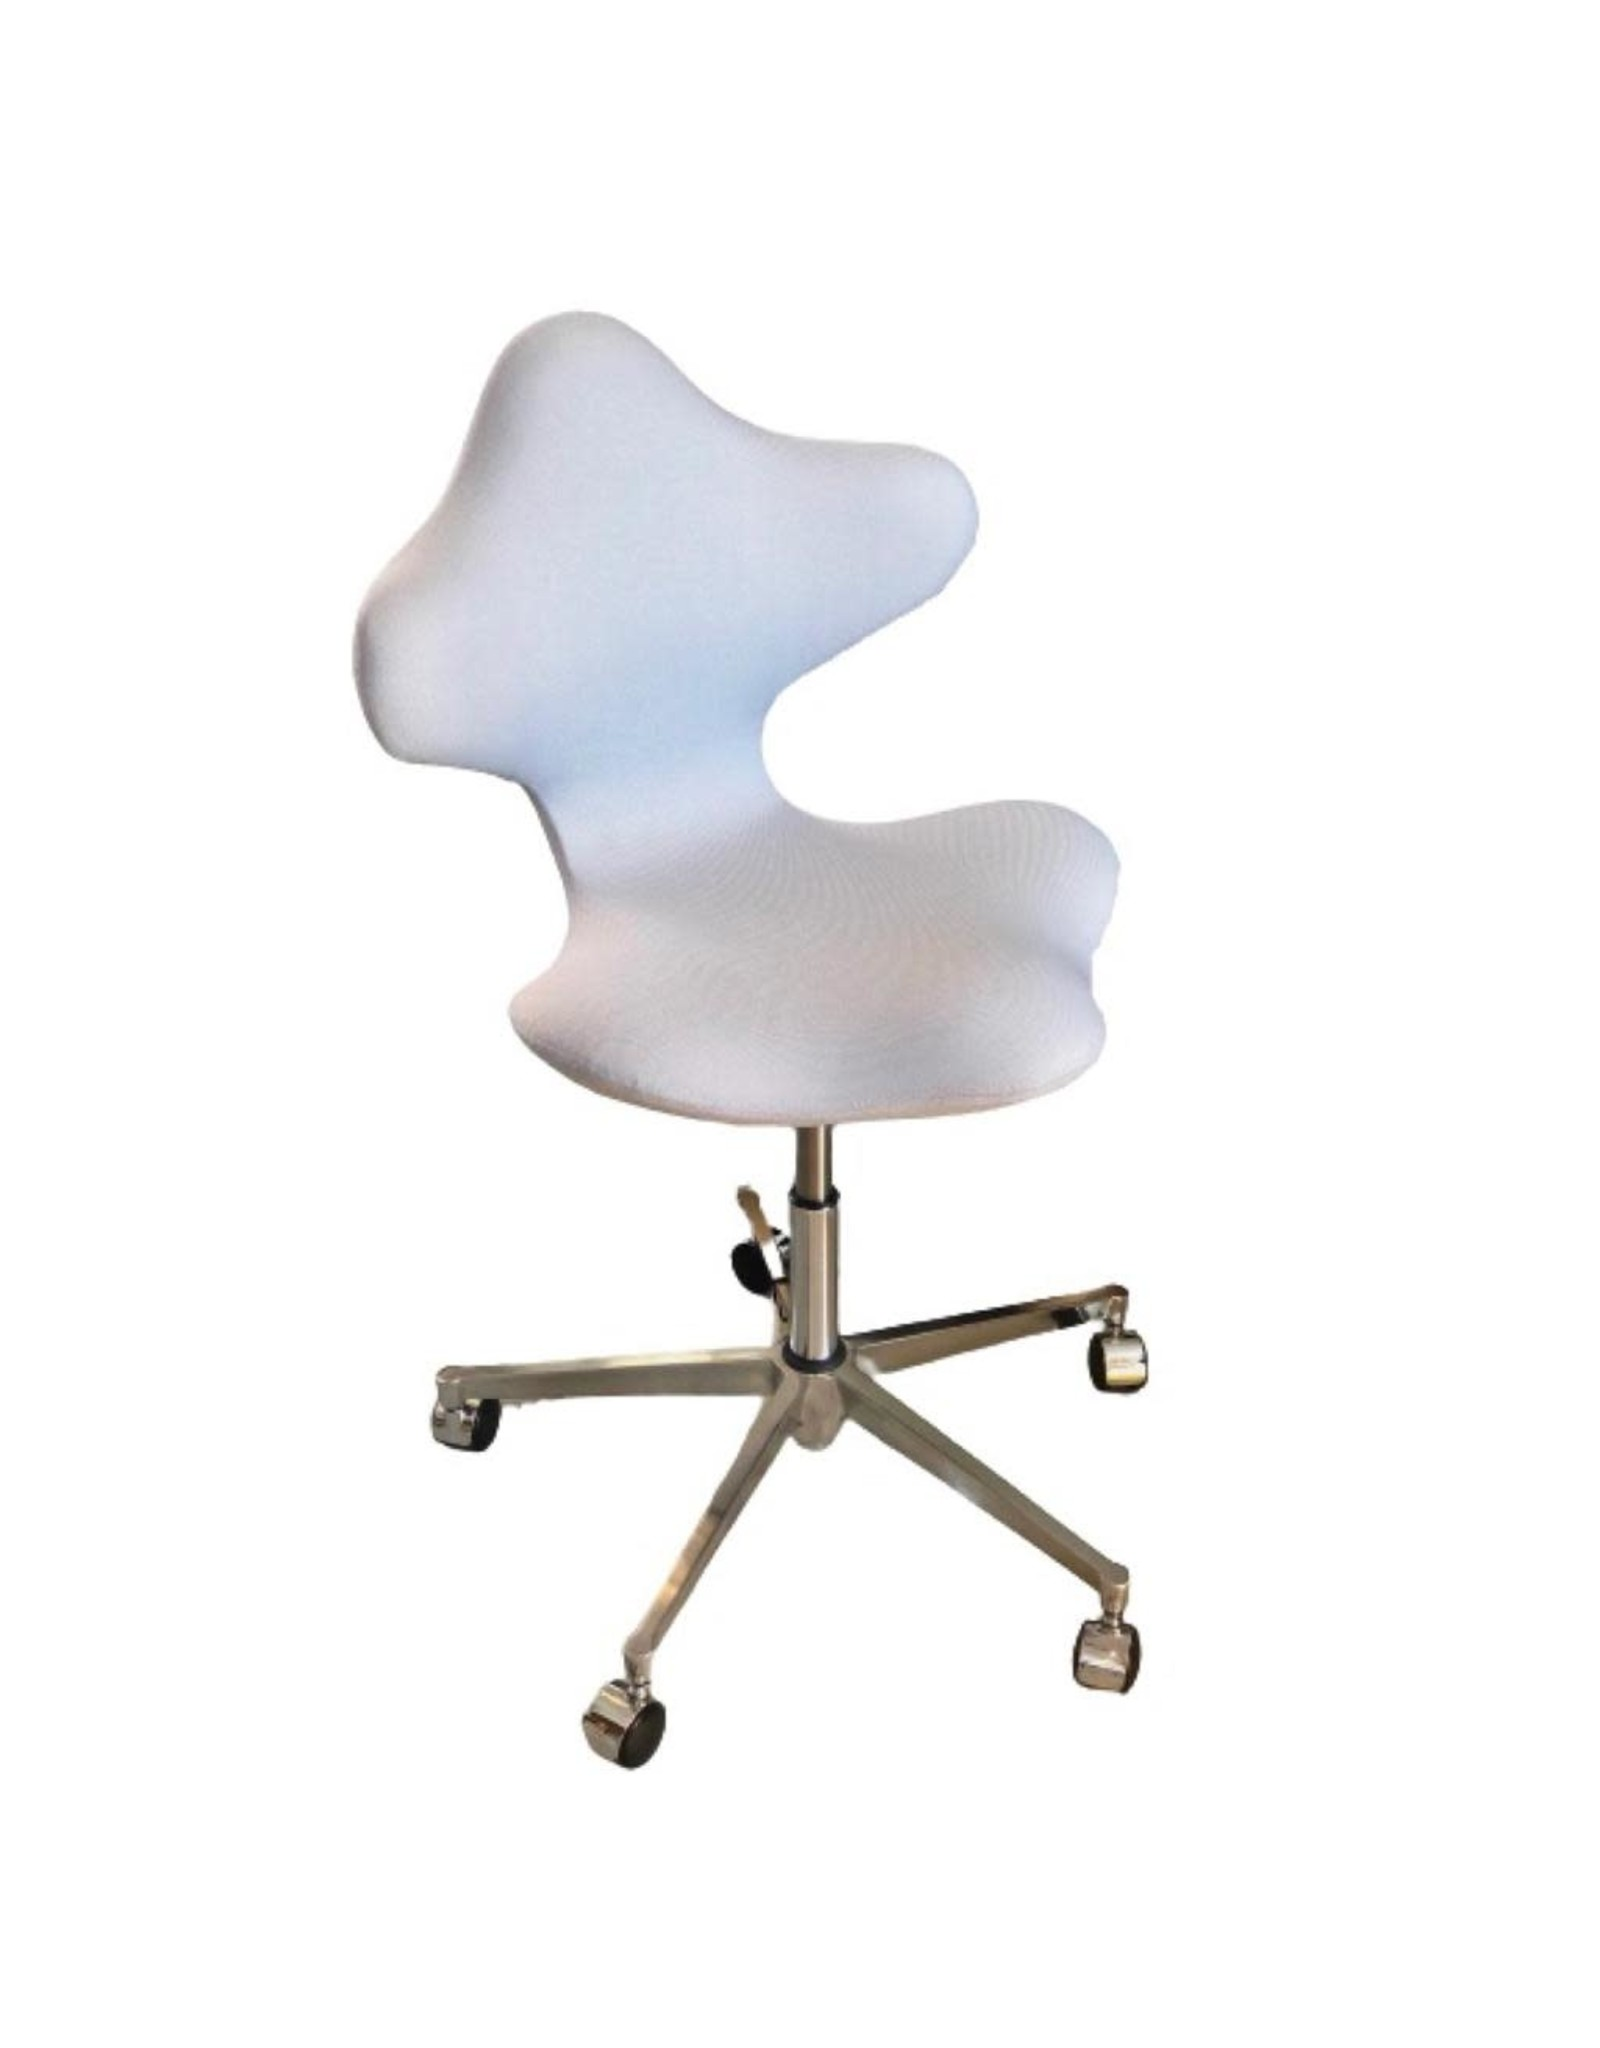 VARIER ACTIVE HEIGHT ADJUSTABLE SWIVEL CHAIR IN LIGHT GREY #144 REVIVE FABRIC